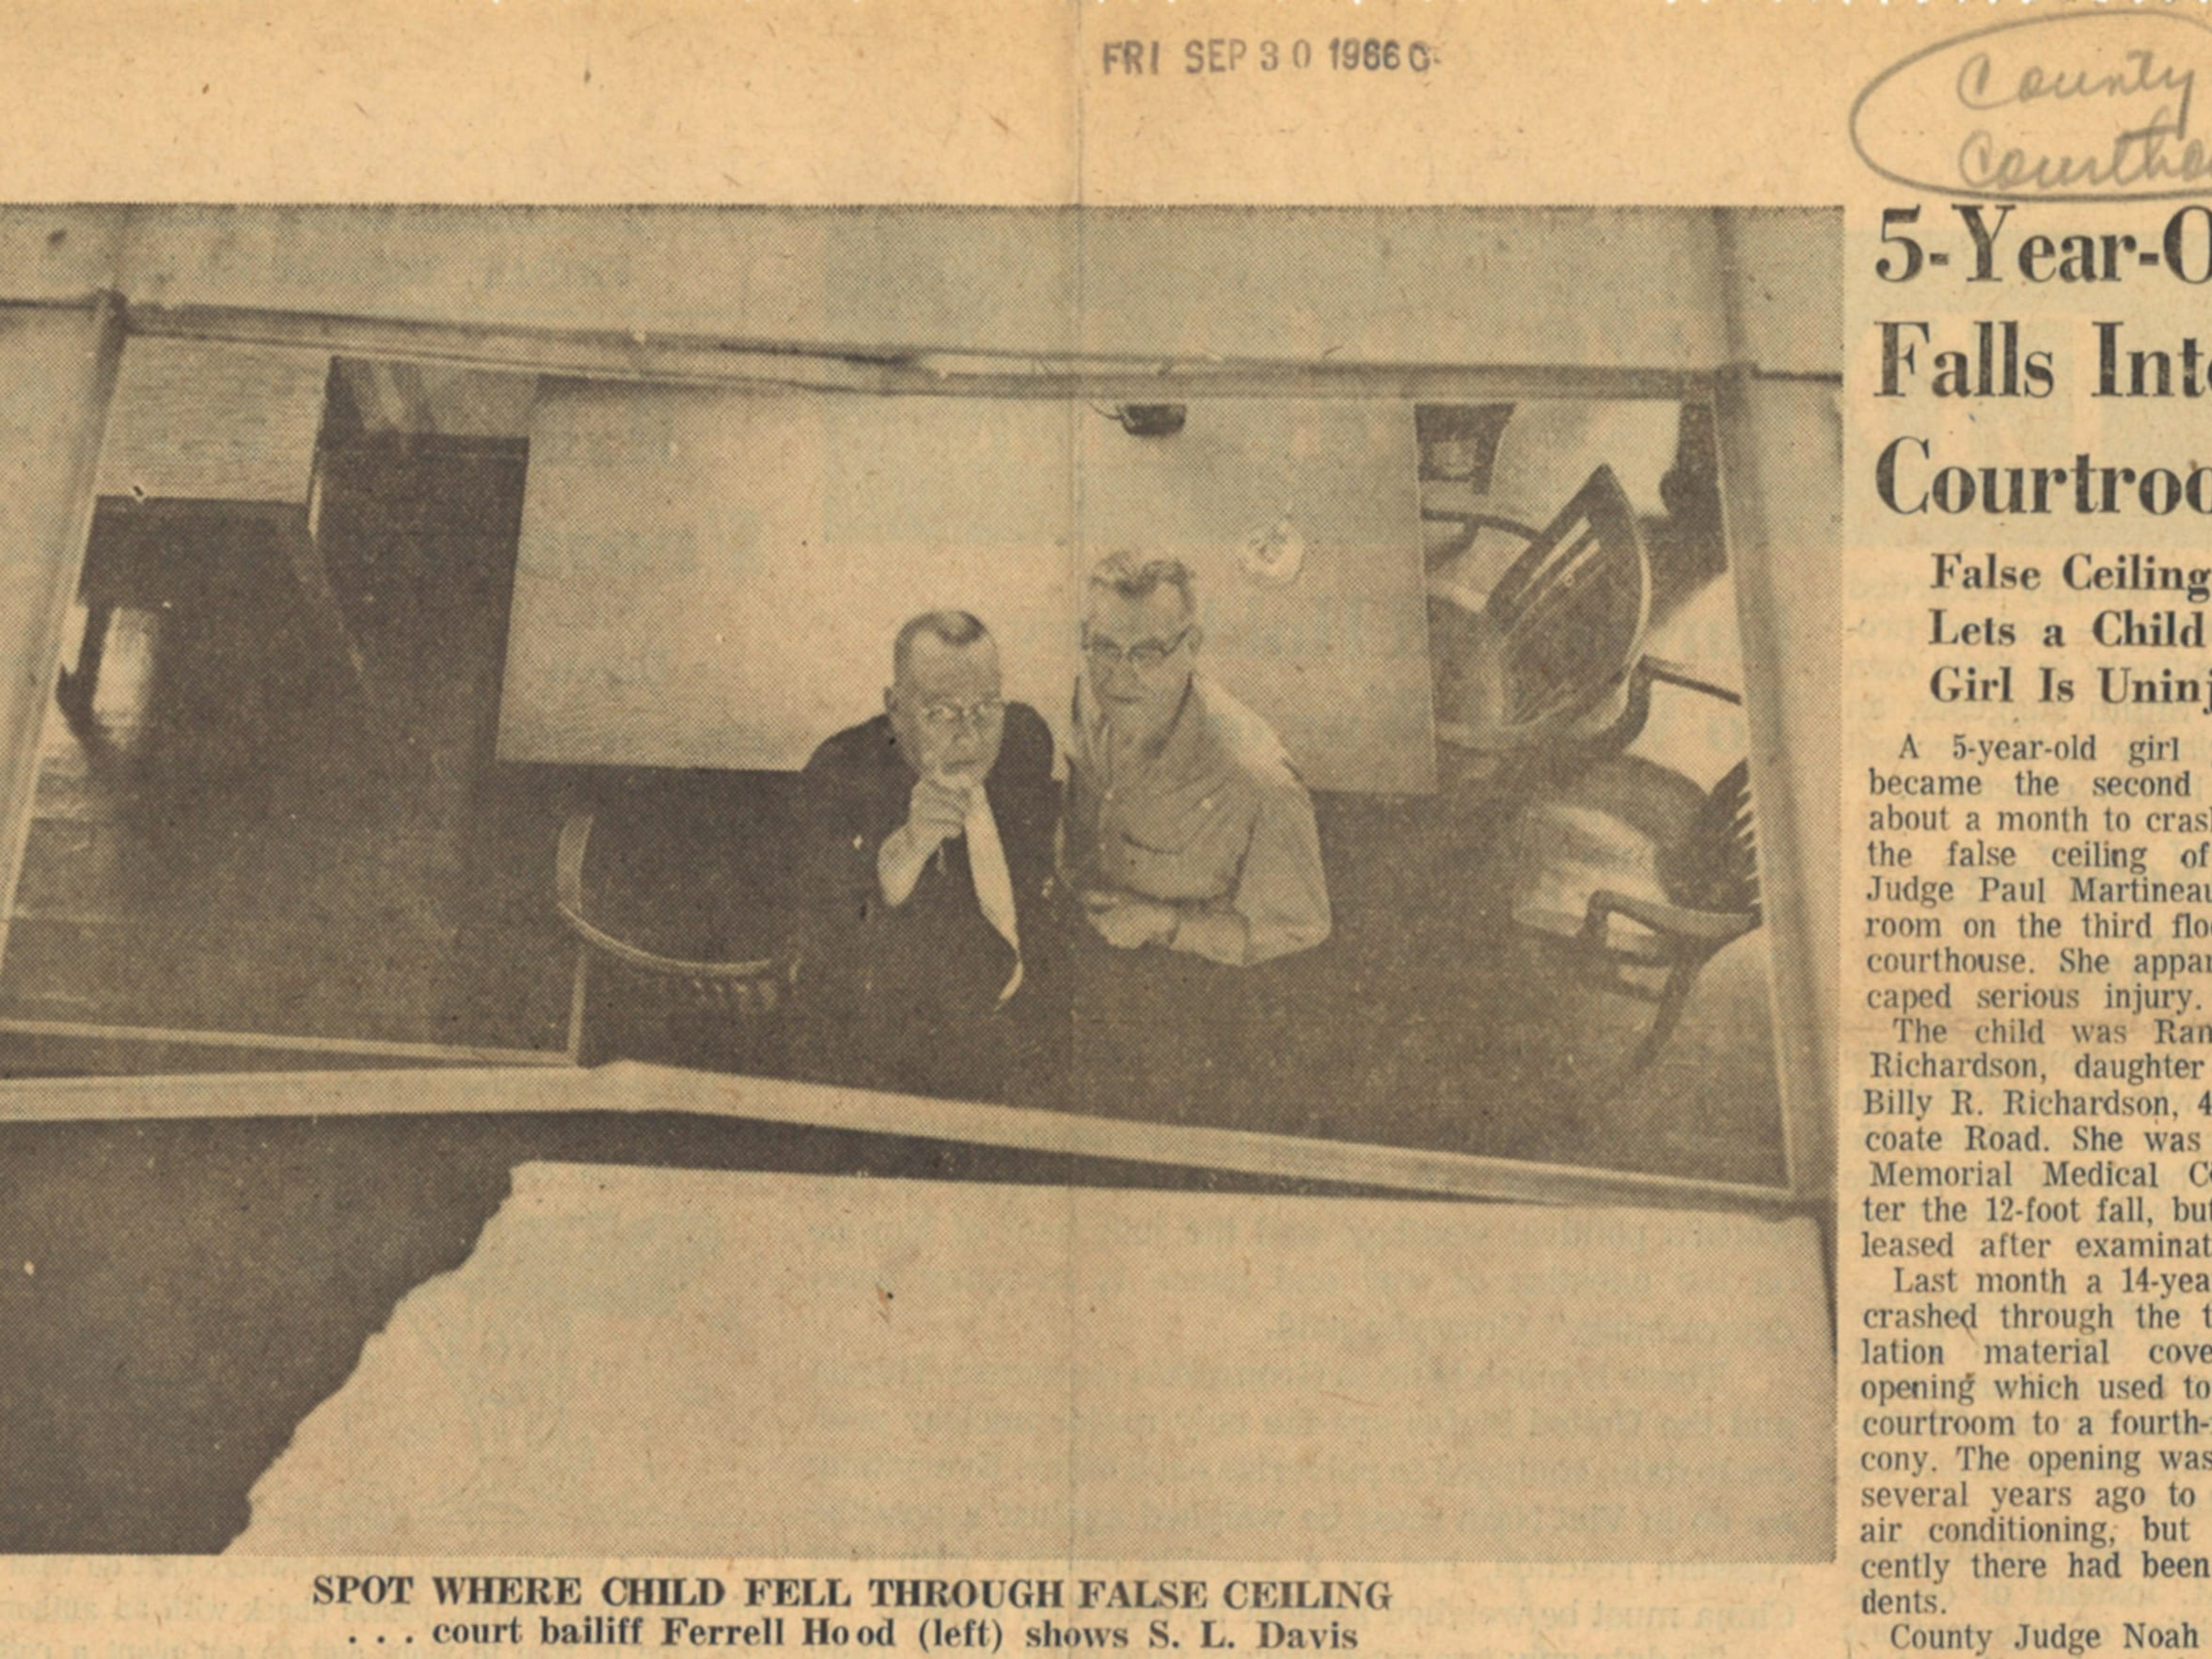 An article from Sept. 30, 1966 Caller-Times detailing how a 5-year-old girl fell through a false ceiling in the Nueces County Courthouse.